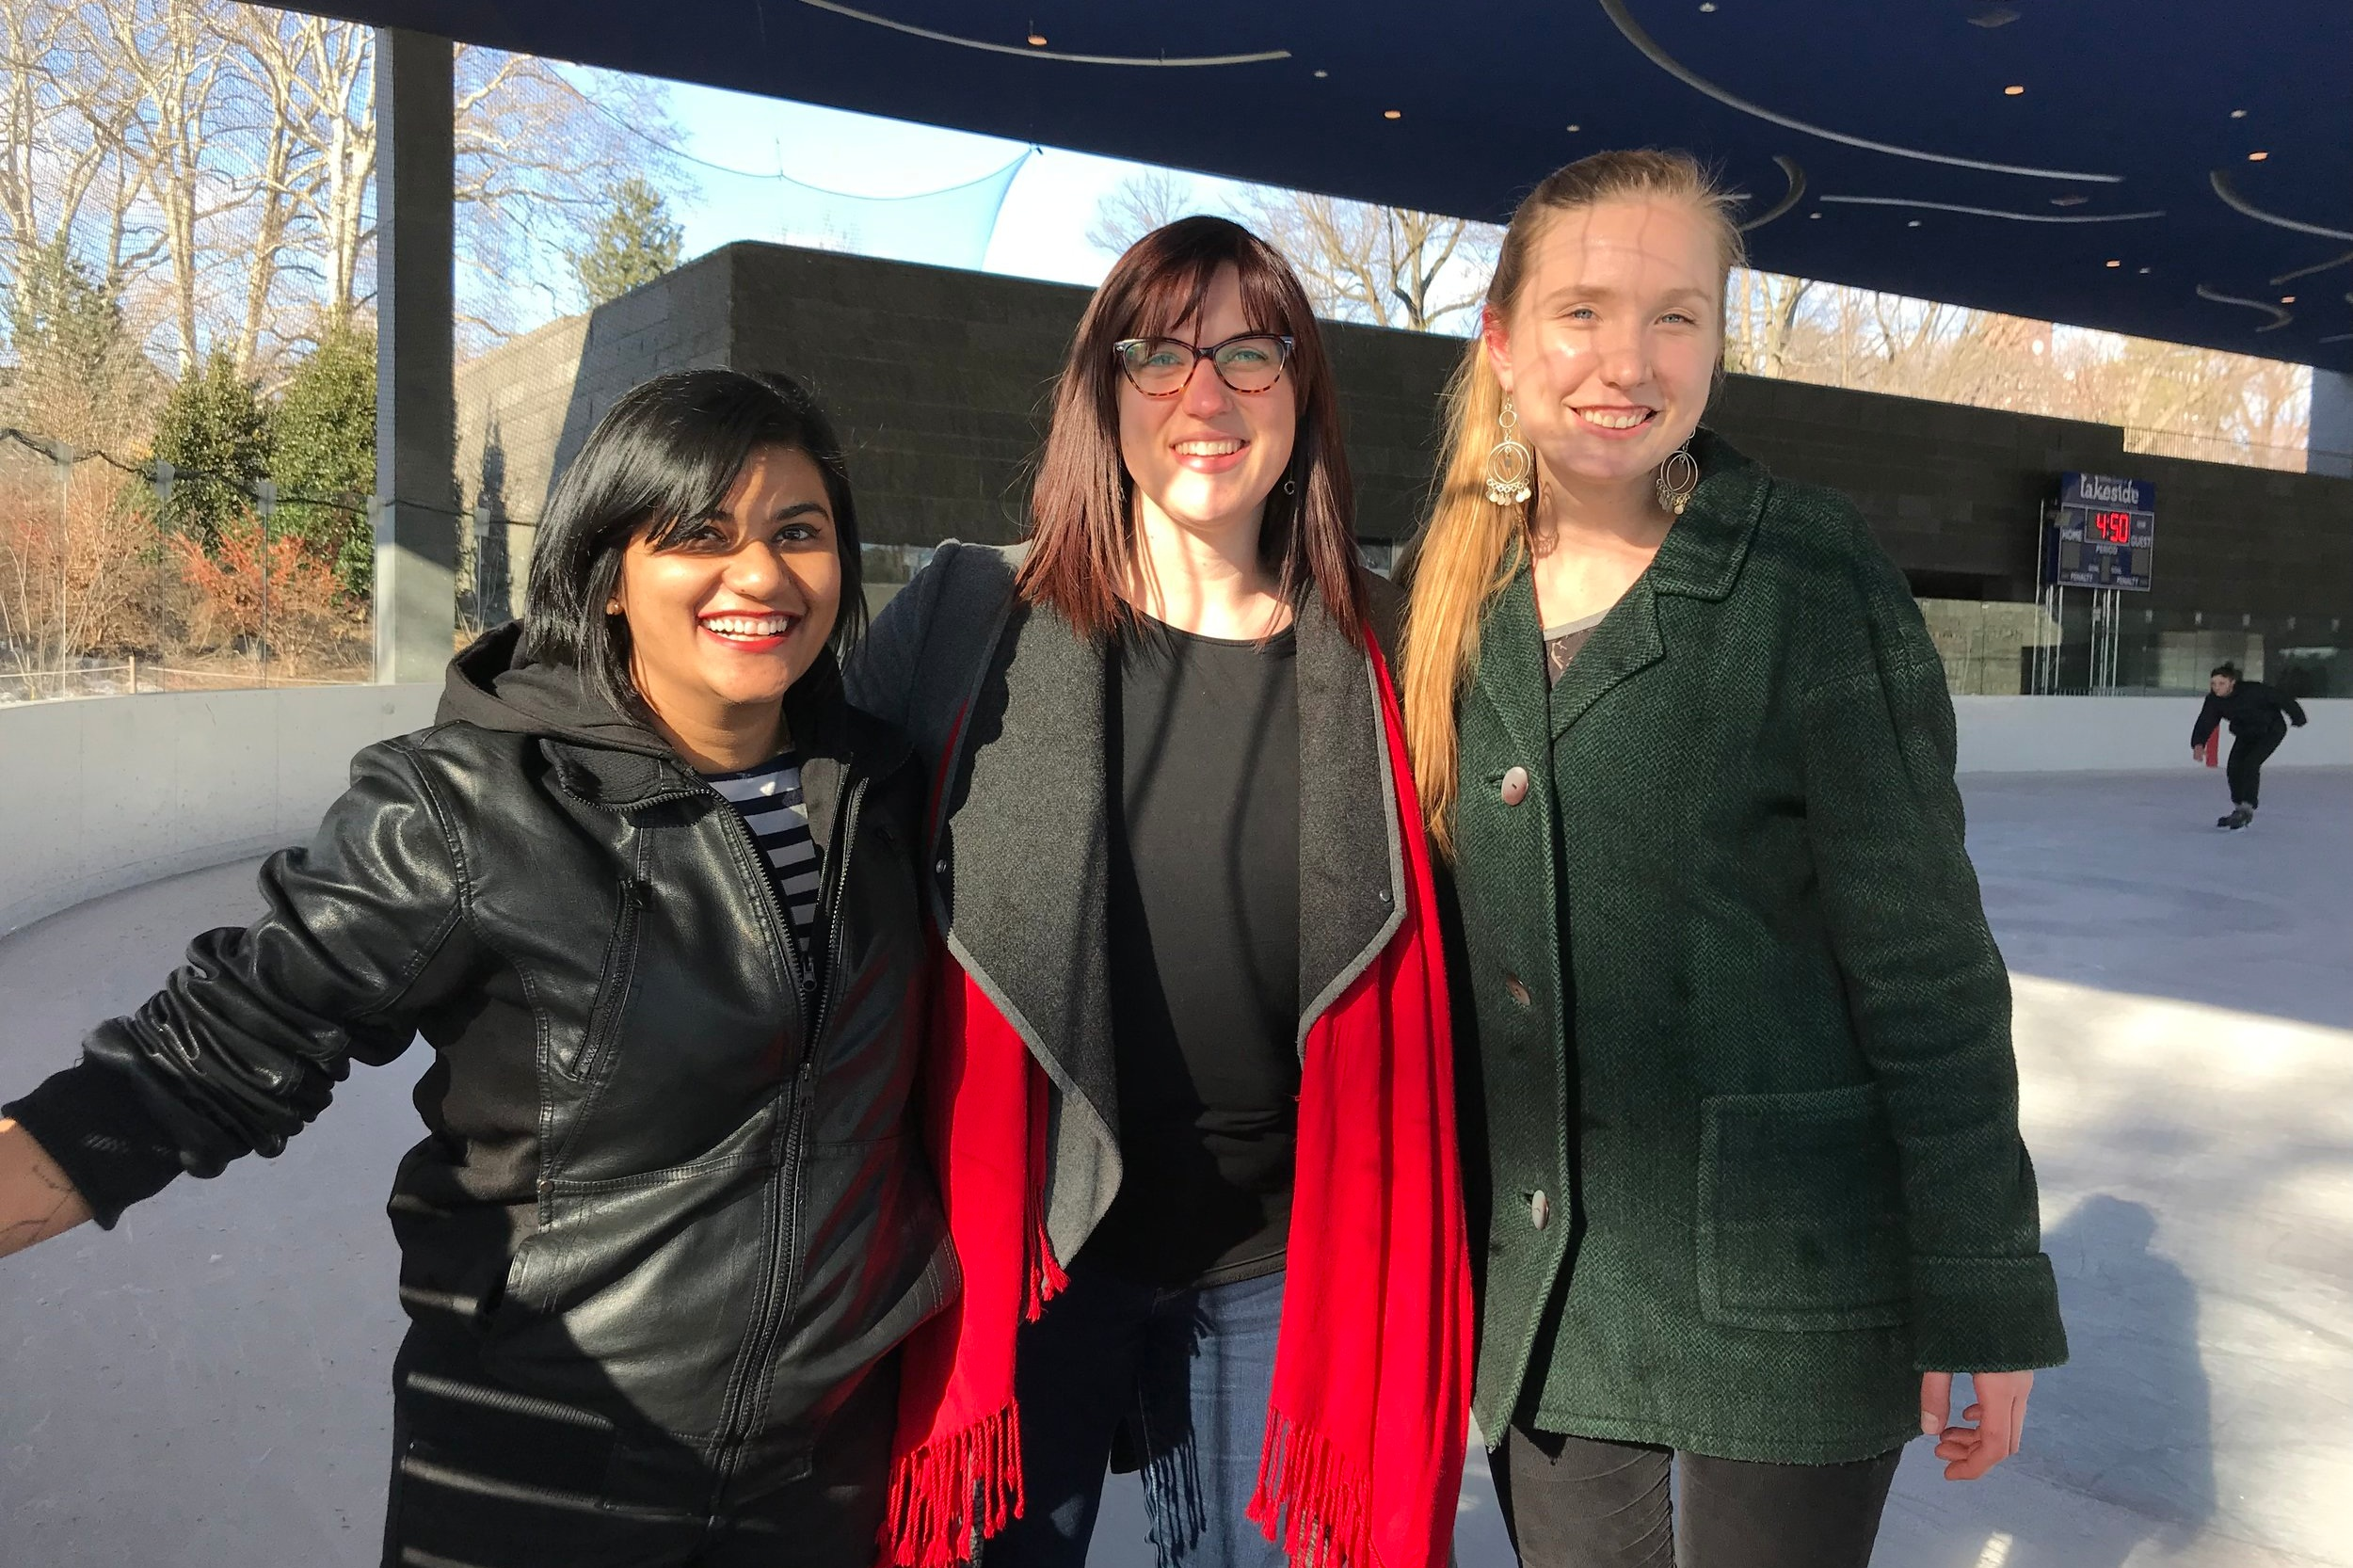 Ice Skating at Prospect Park - March 14, 2019Team Loci visited the LeFrak Center designed by TWBTA at Lakeside in Prospect Park this week for an ice skating outing!